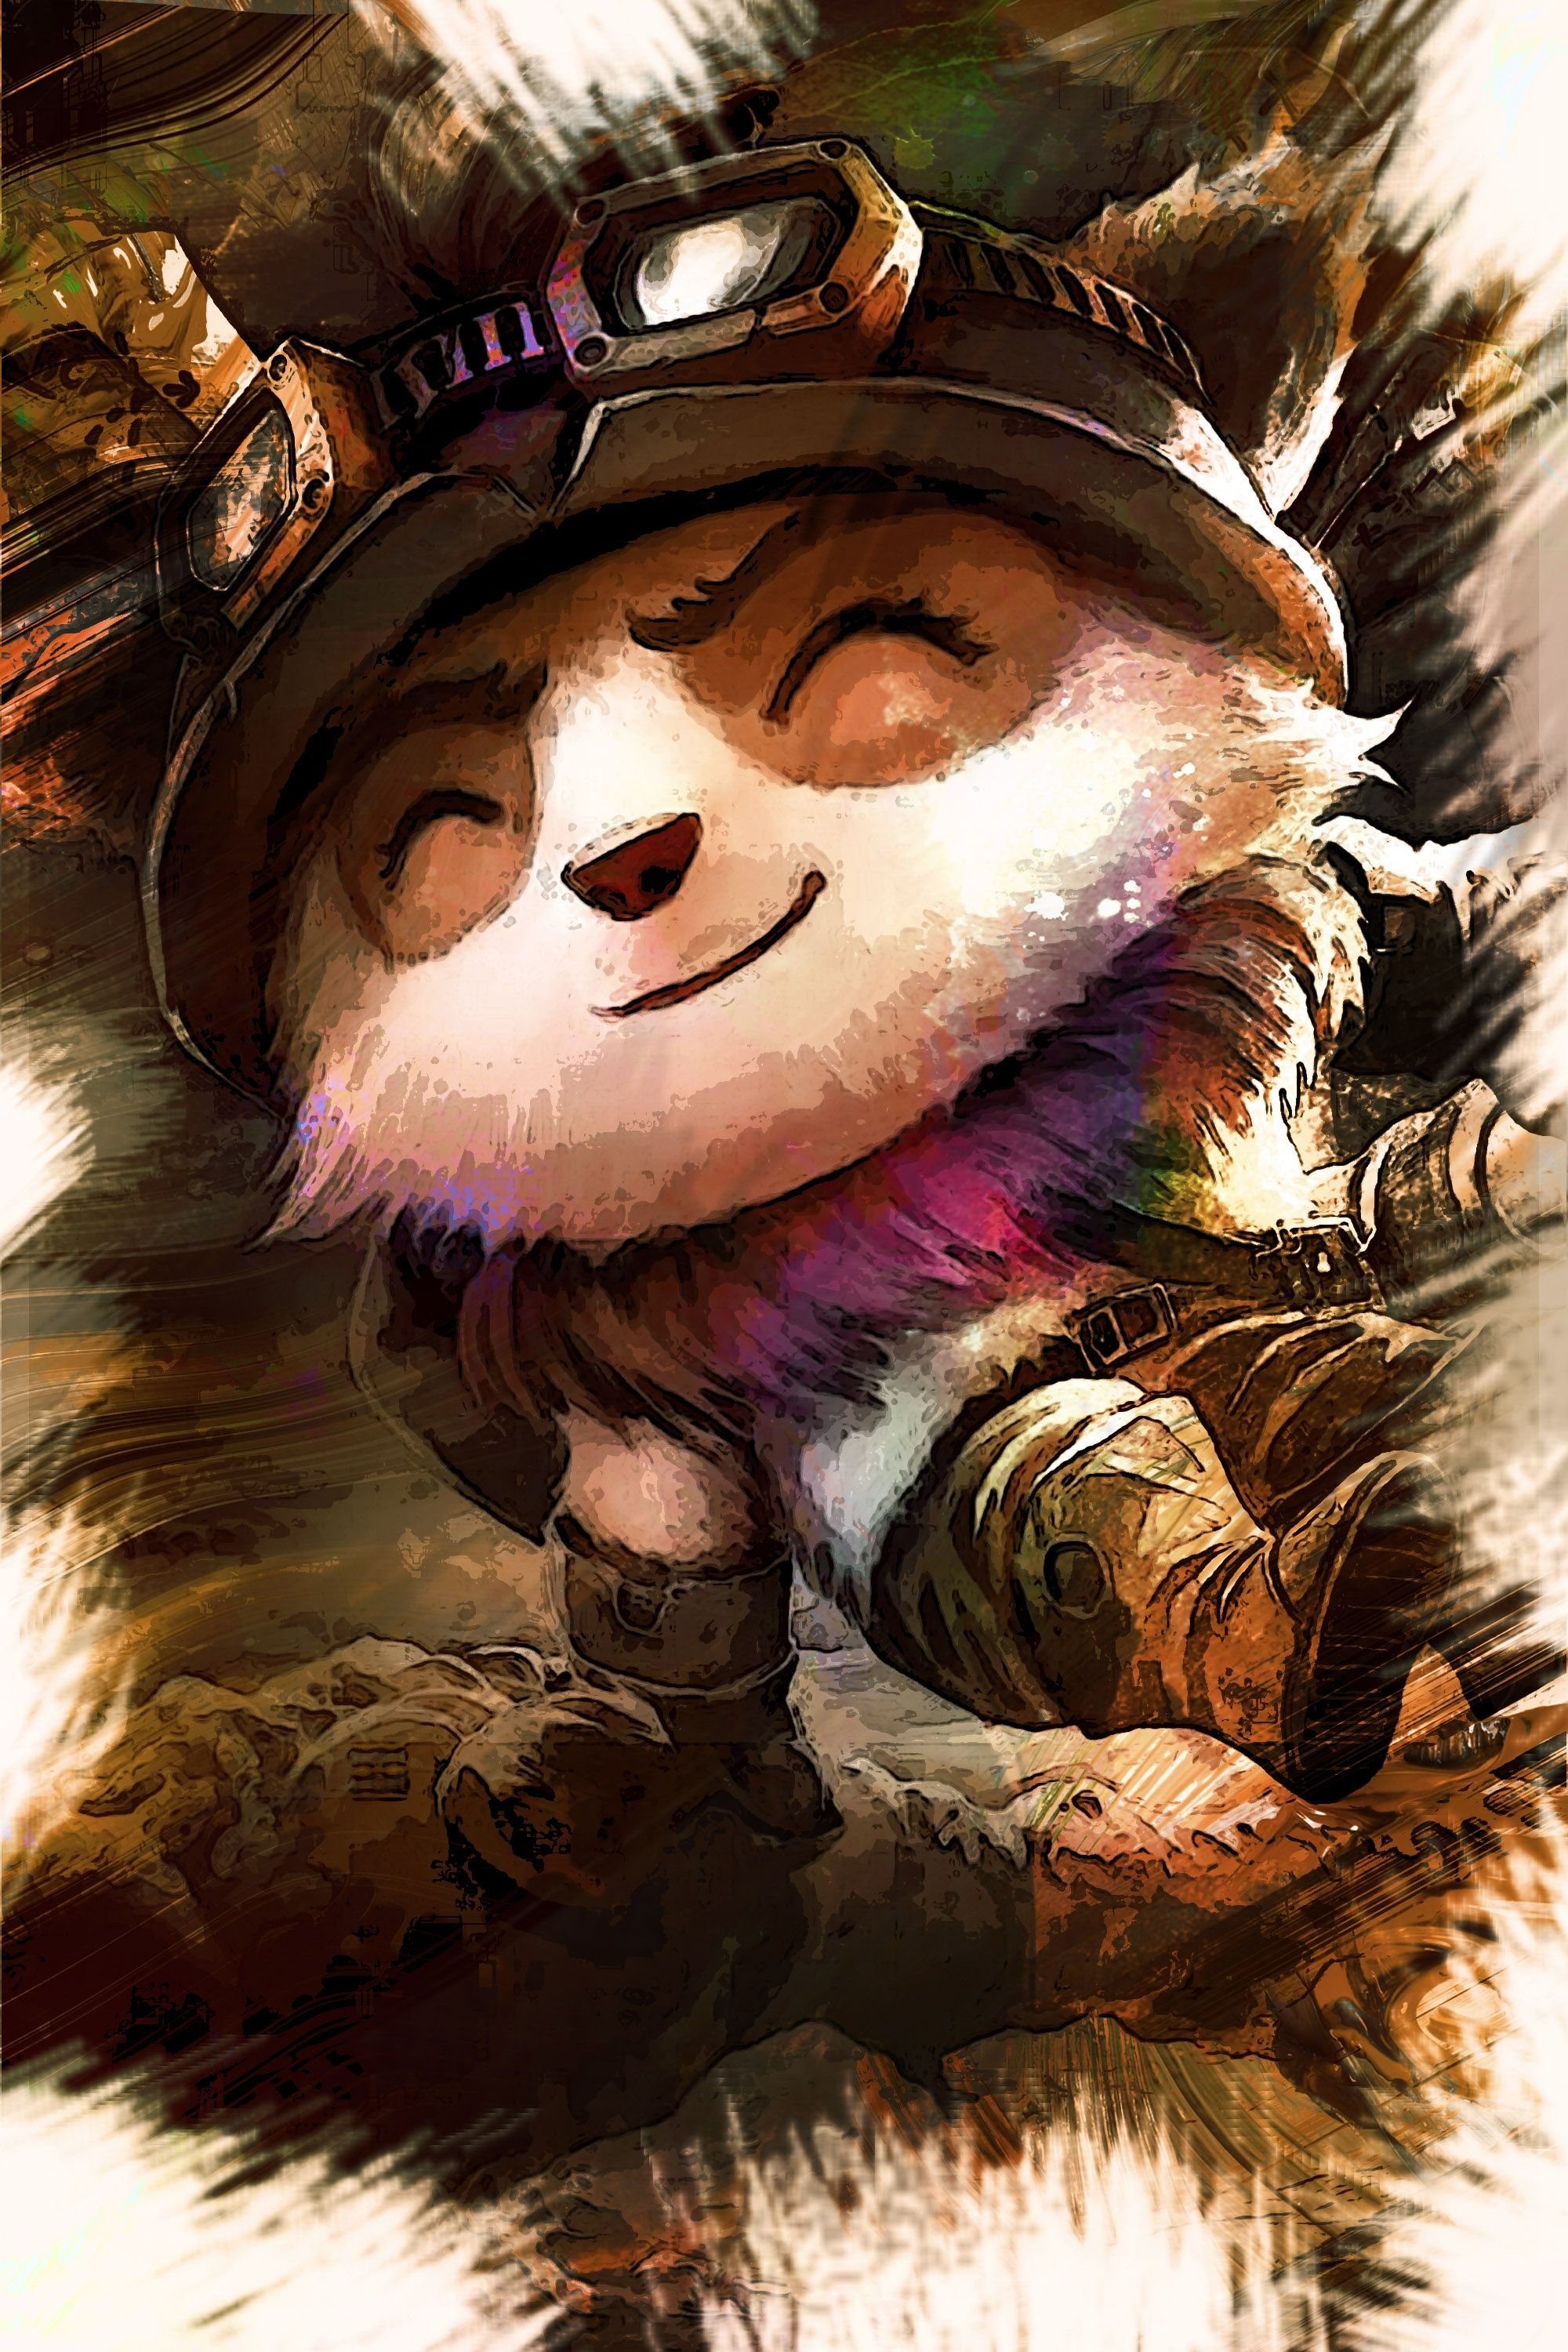 League of legends teemo characters gaming and assassin s creed greetings descriptioncustom artwork of the character from the extraordinary game kristyandbryce Gallery